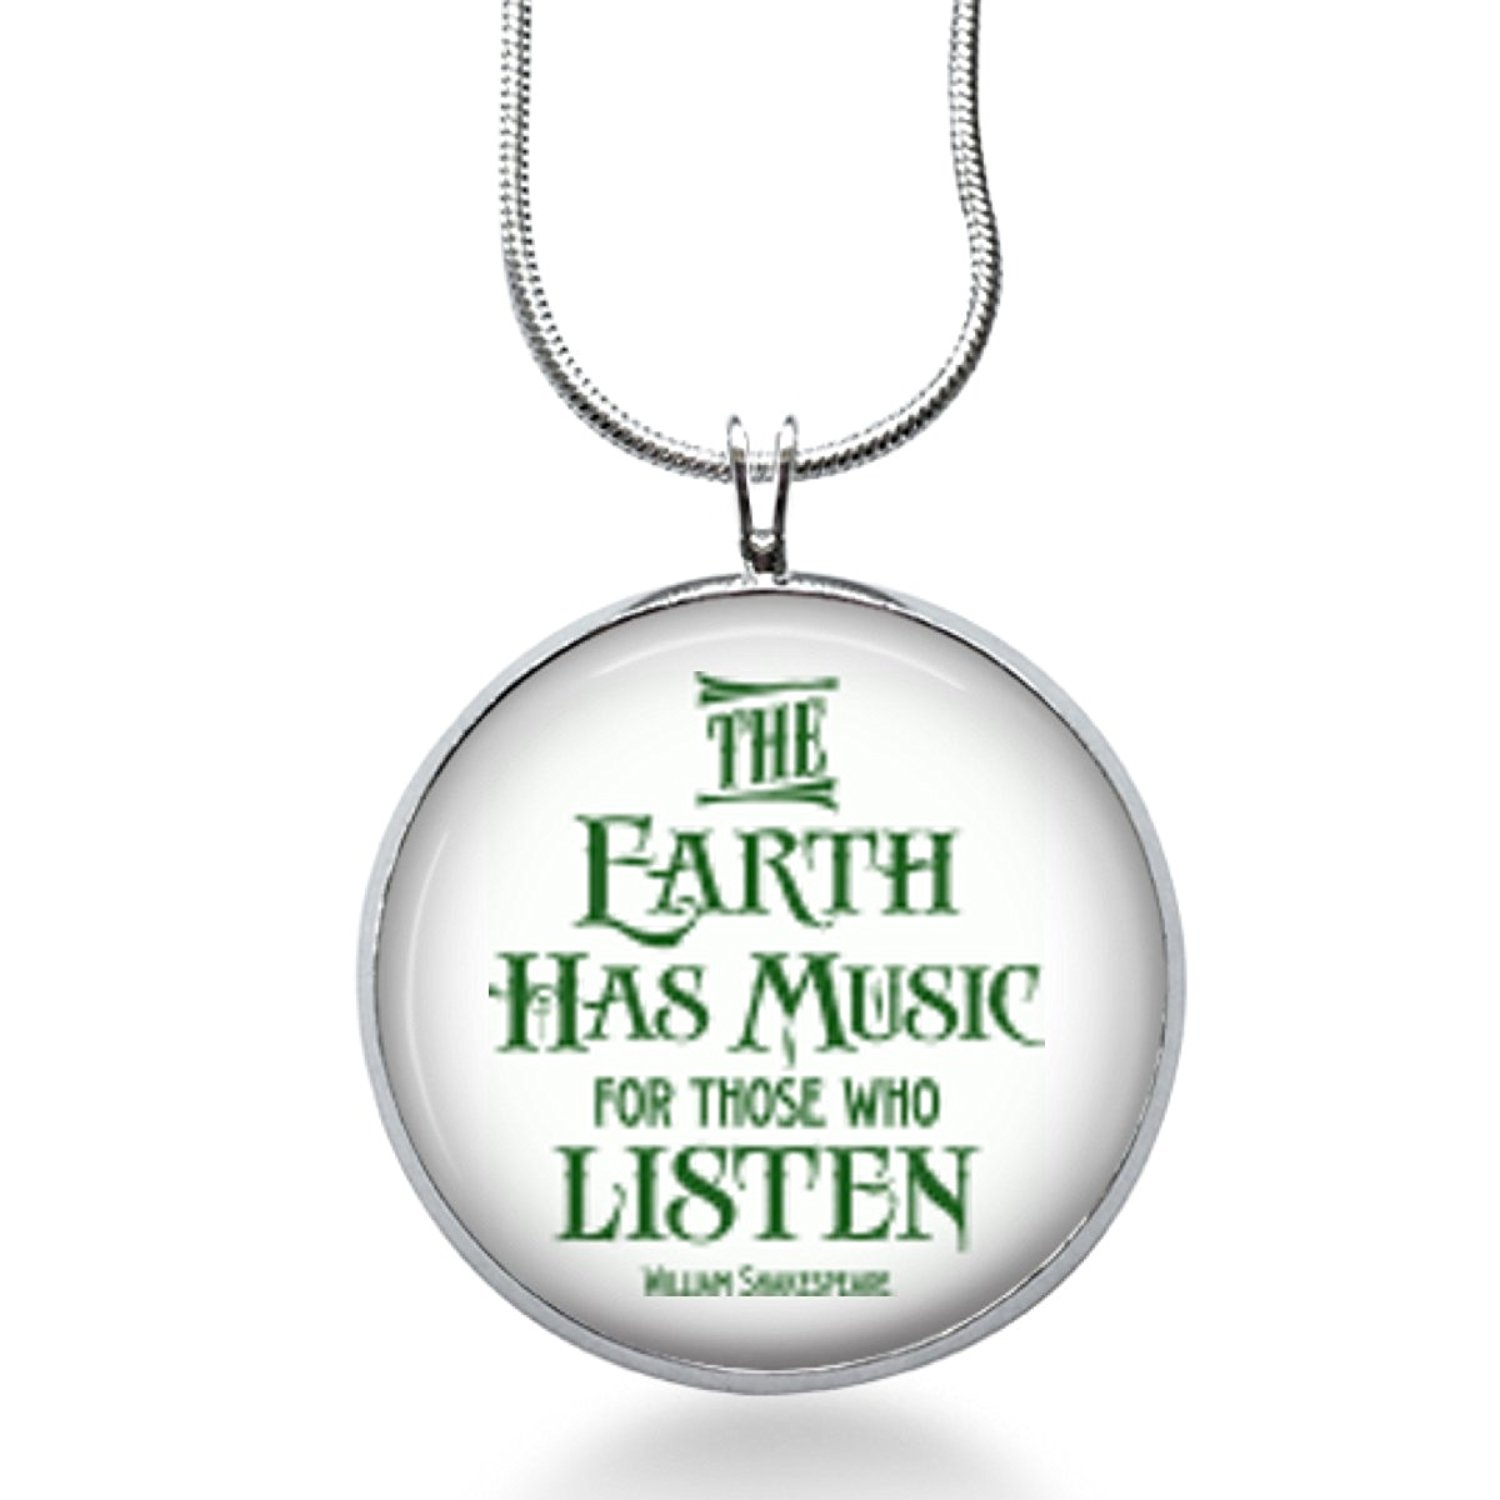 artist series of modern large sales music your mayer wear touch john pendant